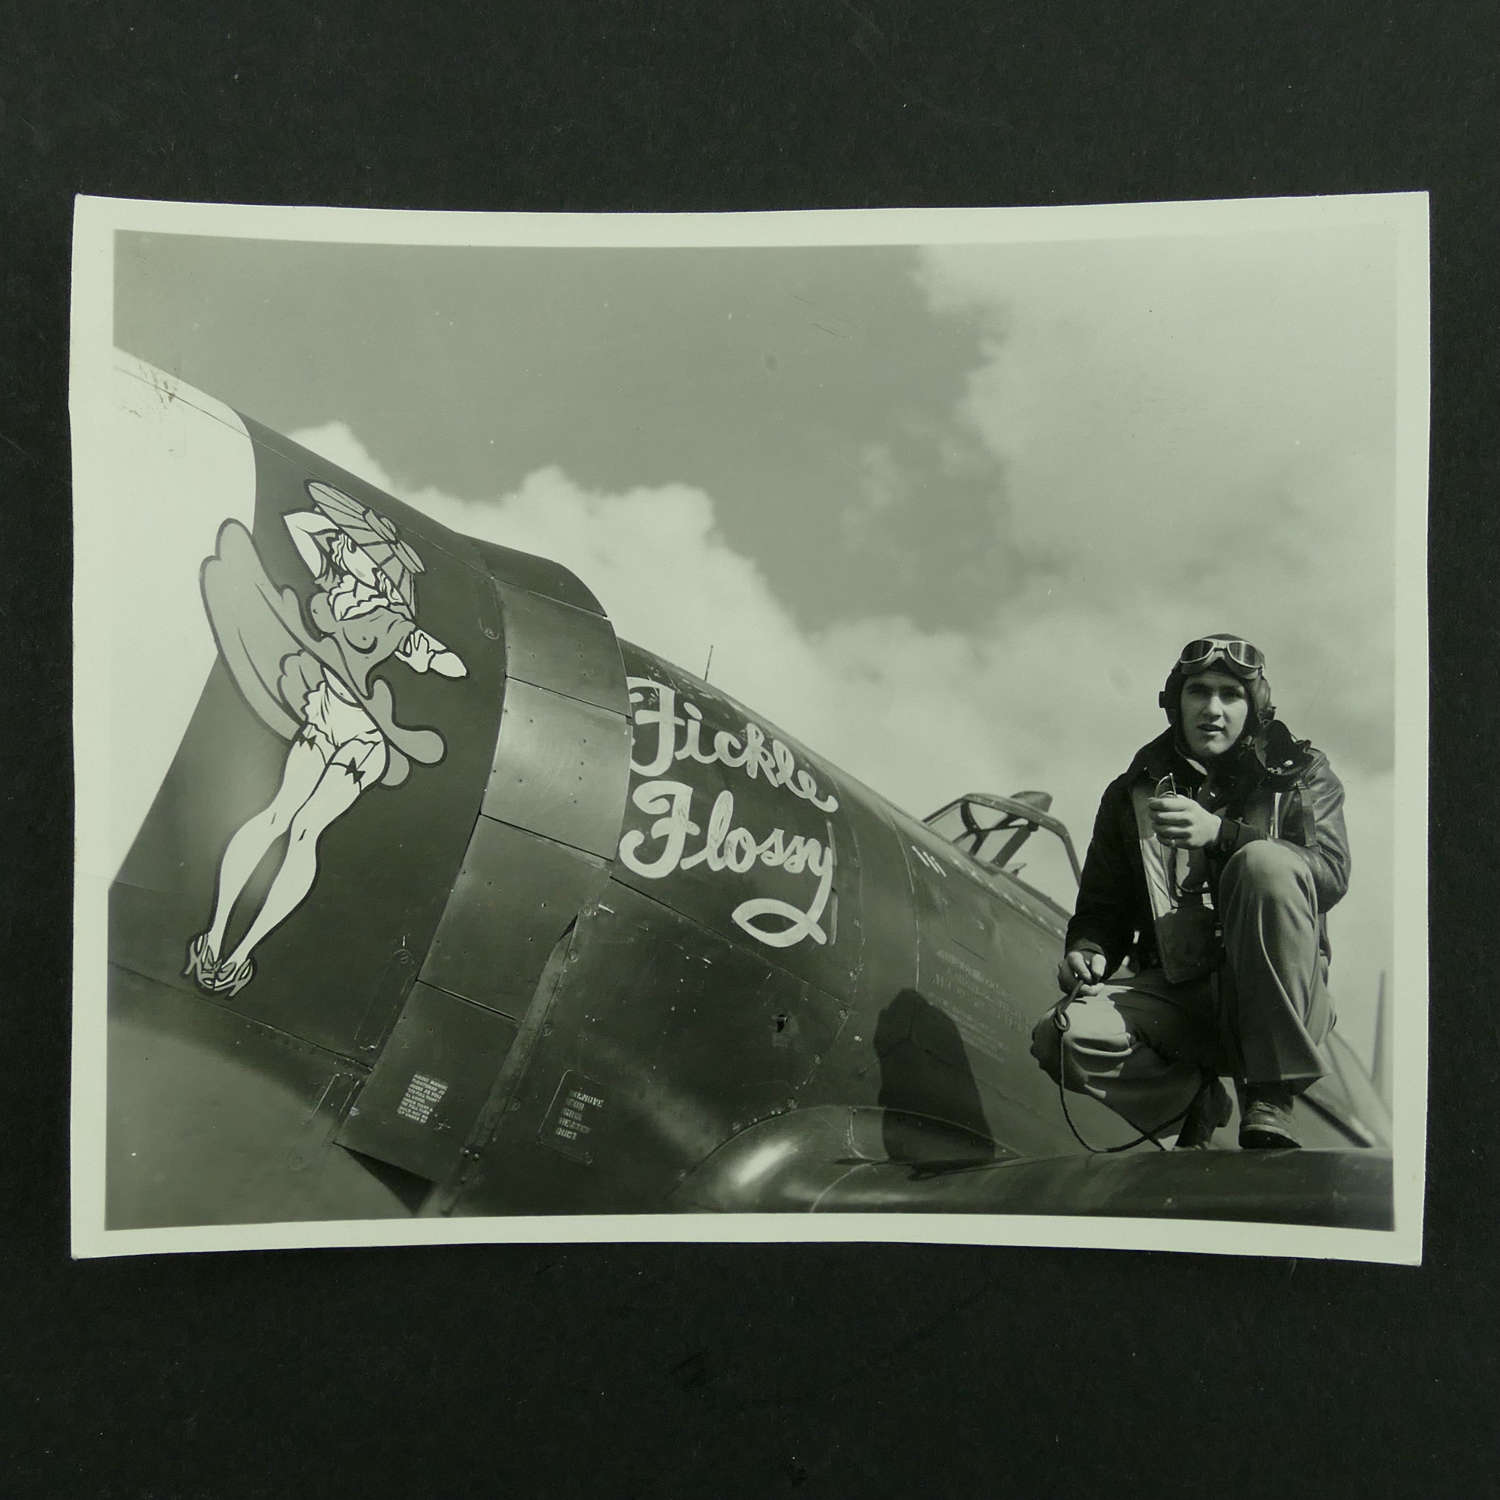 USAAF 9th AAF 366th fighter Group nose art photo - 'Fickle Flossy'